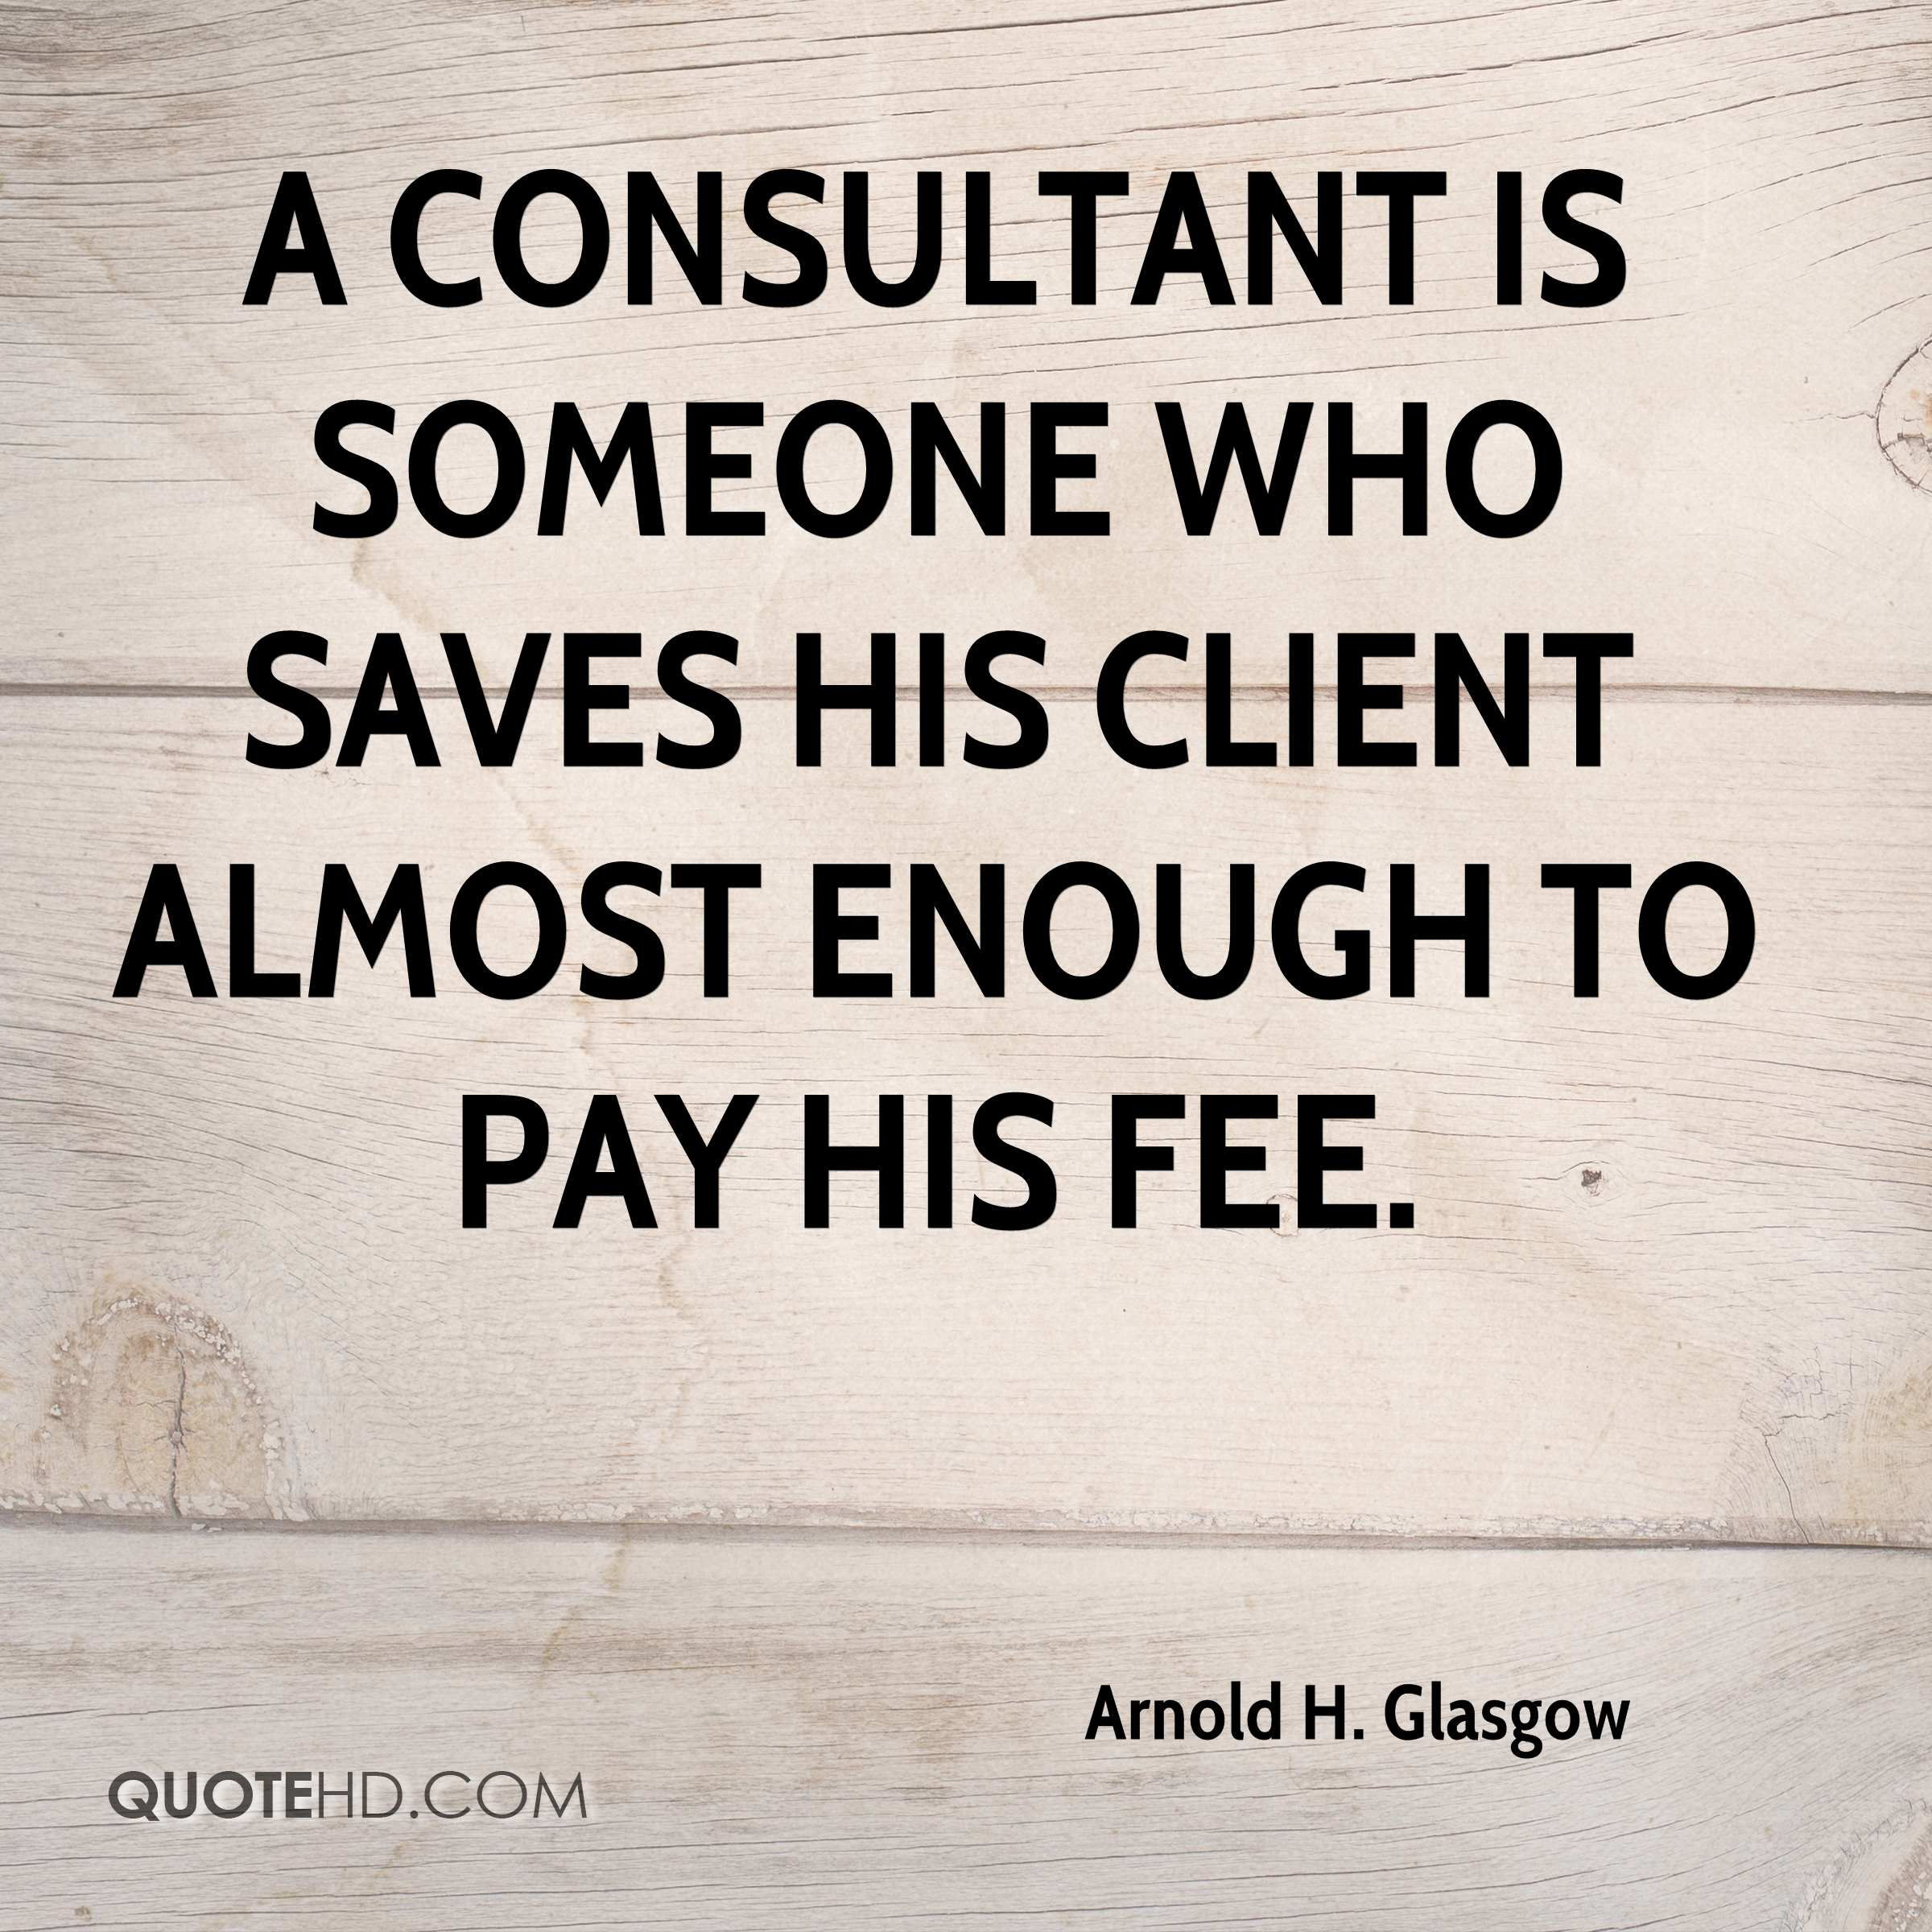 A consultant is someone who saves his client almost enough to pay his fee.